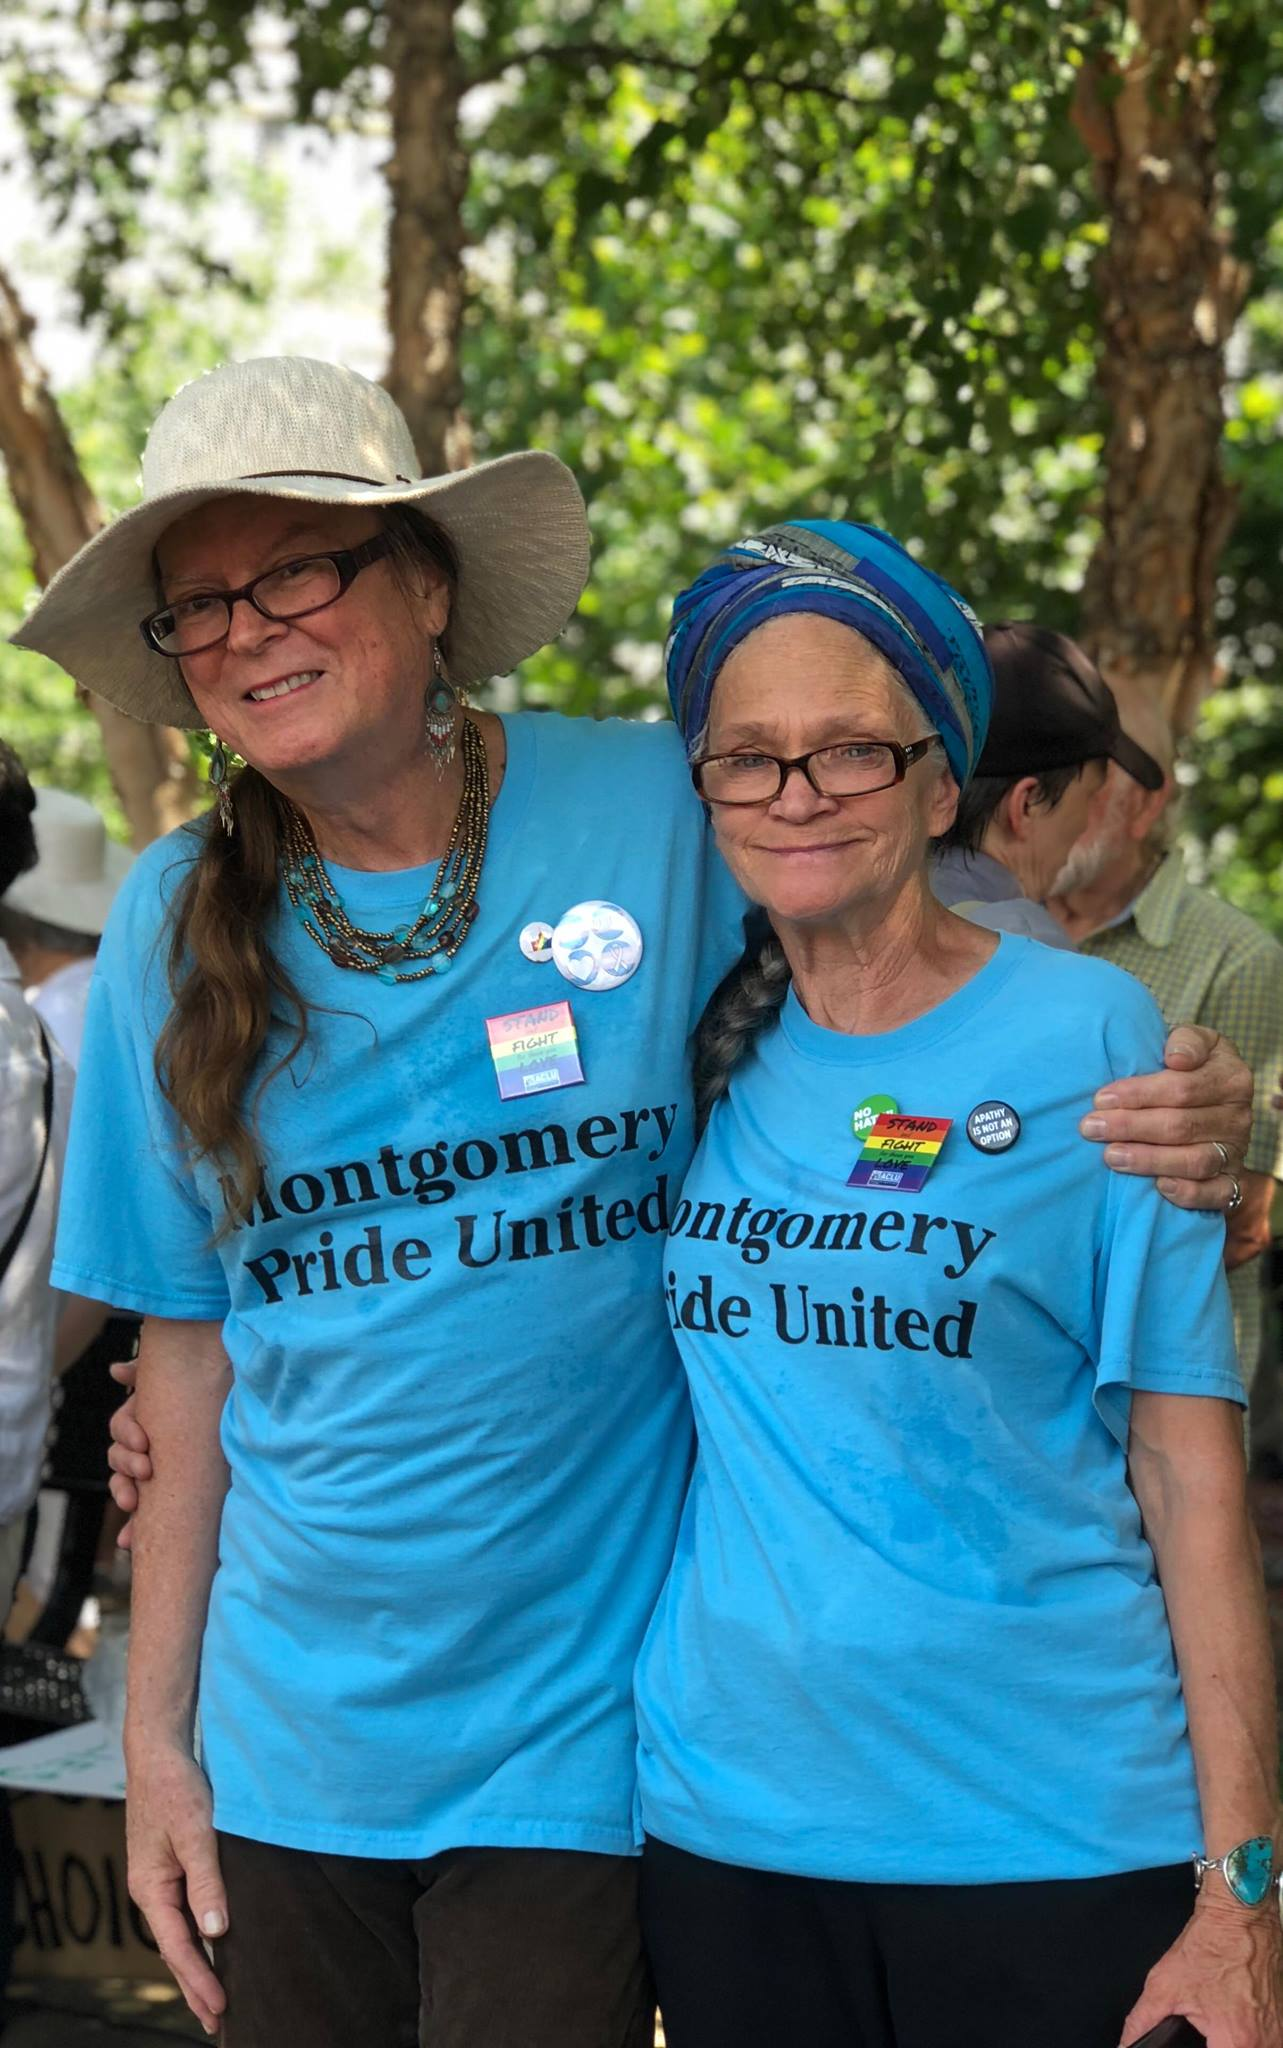 Our Founders - Meta Ellis and Ms. Harvey McDaniel are our Director and Educational Outreach Director. Meta Ellis has been a life-long activist for human and animal rights here in Montgomery, AL as well as California, Arizona, Ohio, and Washington D.C. She is the Director of Montgomery Pride United and the co-founder of the Bayard Rustin Community Center. She is passionate about working to help create the Beloved Community as we strive for equality for all. She was also selected to represent Alabama in USA Today's